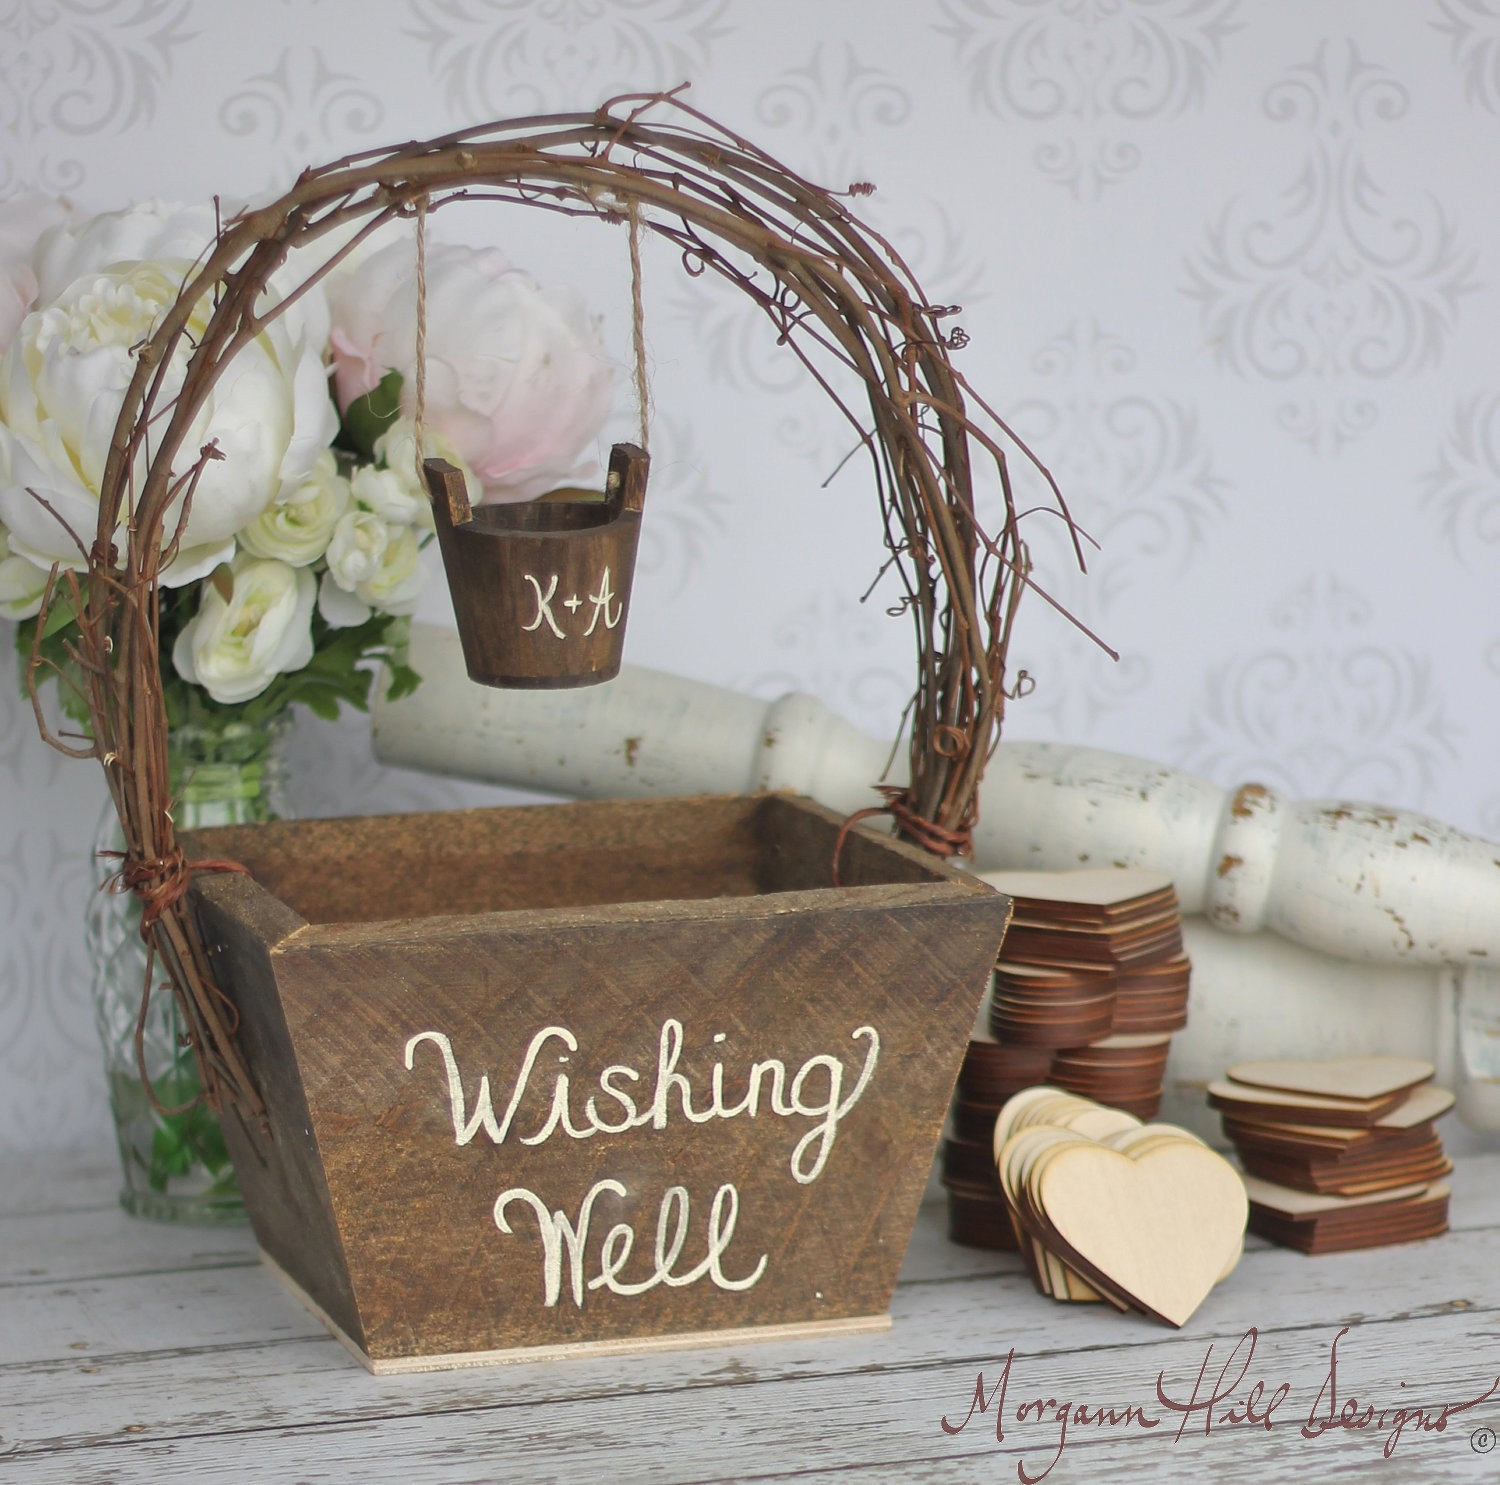 Best Rustic Ideas For Your Wedding: 39 Rustic Chic Wedding Decoration Ideas